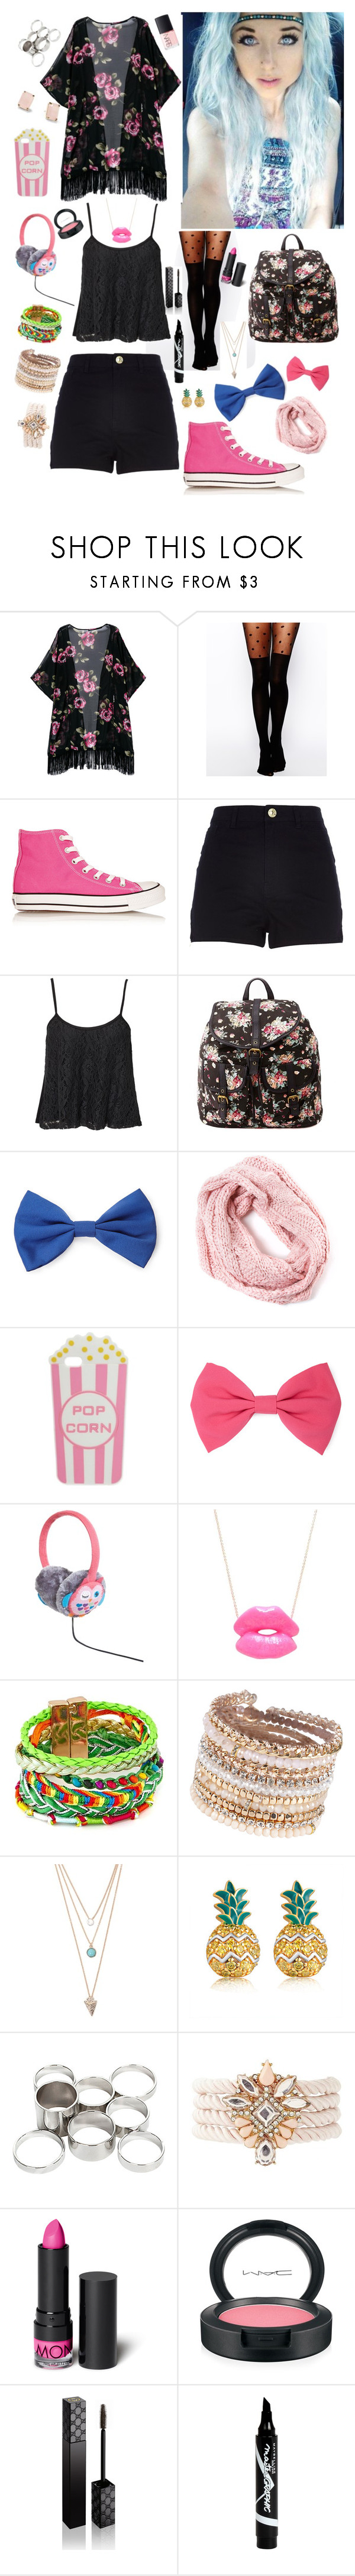 """""""Witches Trust - Kelly Rouge"""" by nationalnerd ❤ liked on Polyvore featuring ASOS, Converse, River Island, Club L, Charlotte Russe, Forever 21, Skinnydip, KitSound, Elephant Heart and ALDO"""